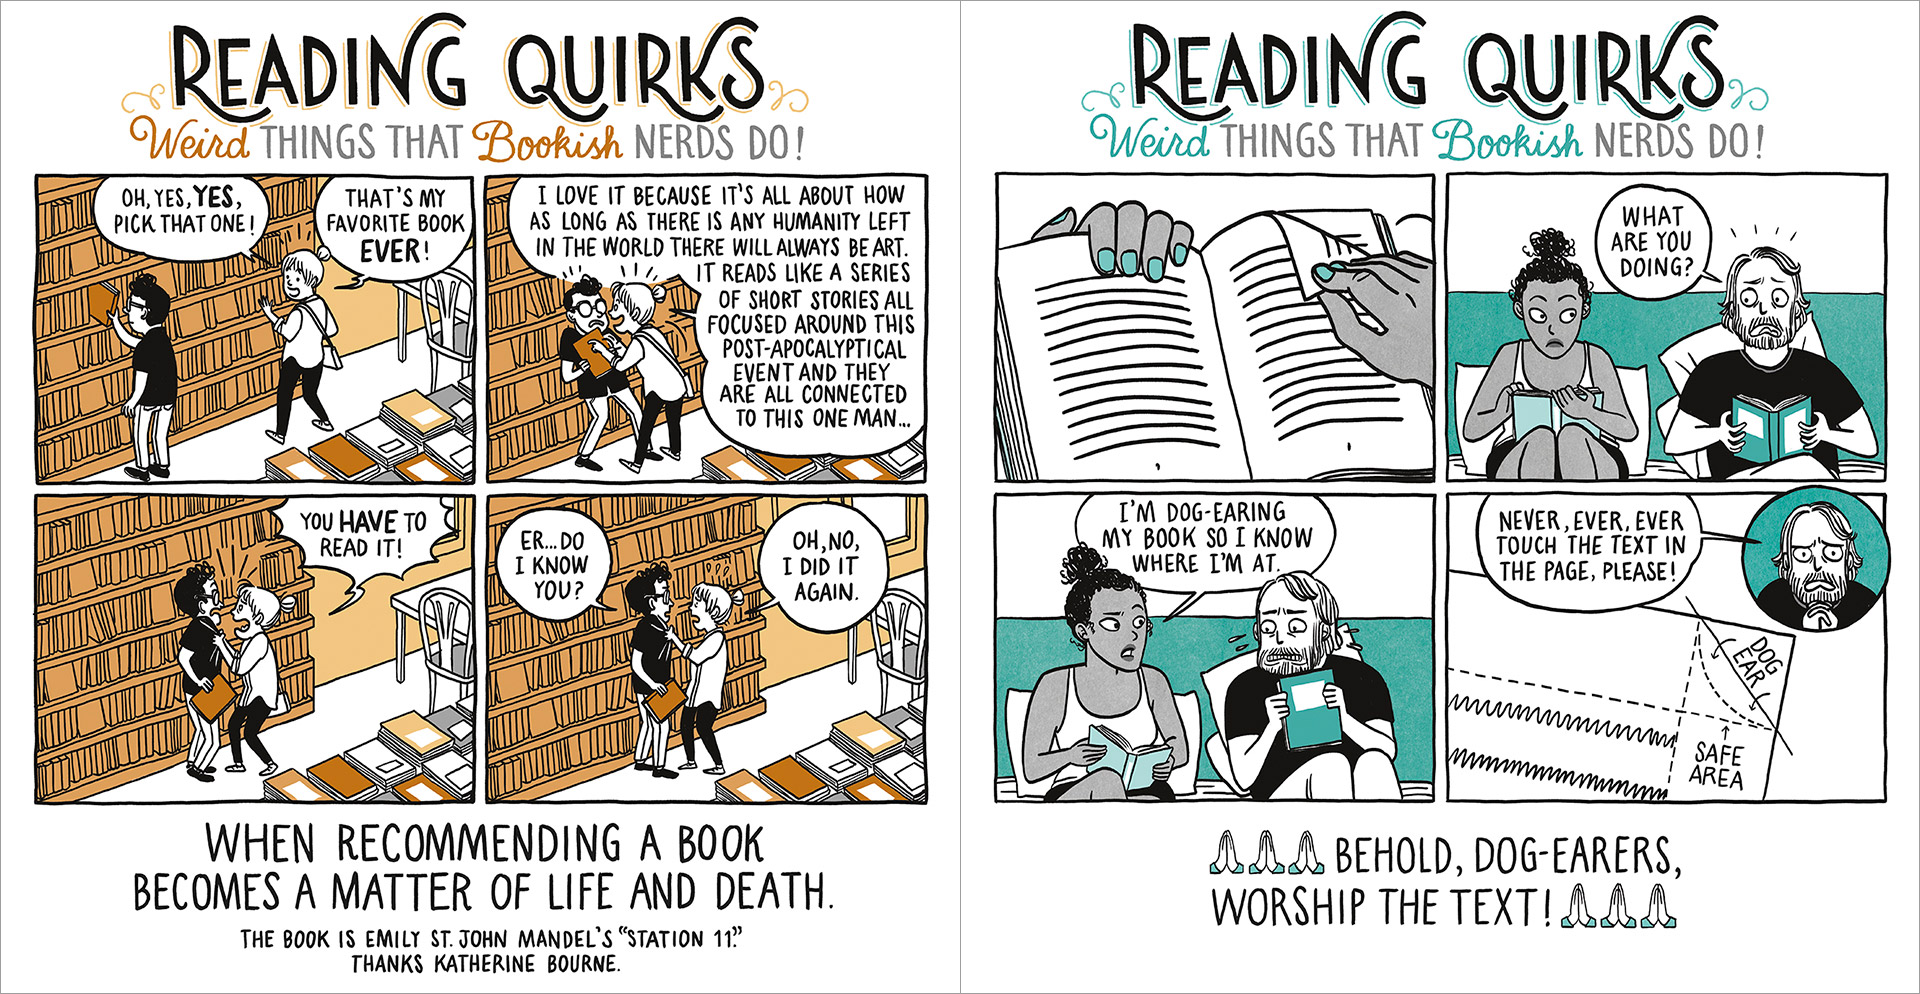 04_reading-quirks